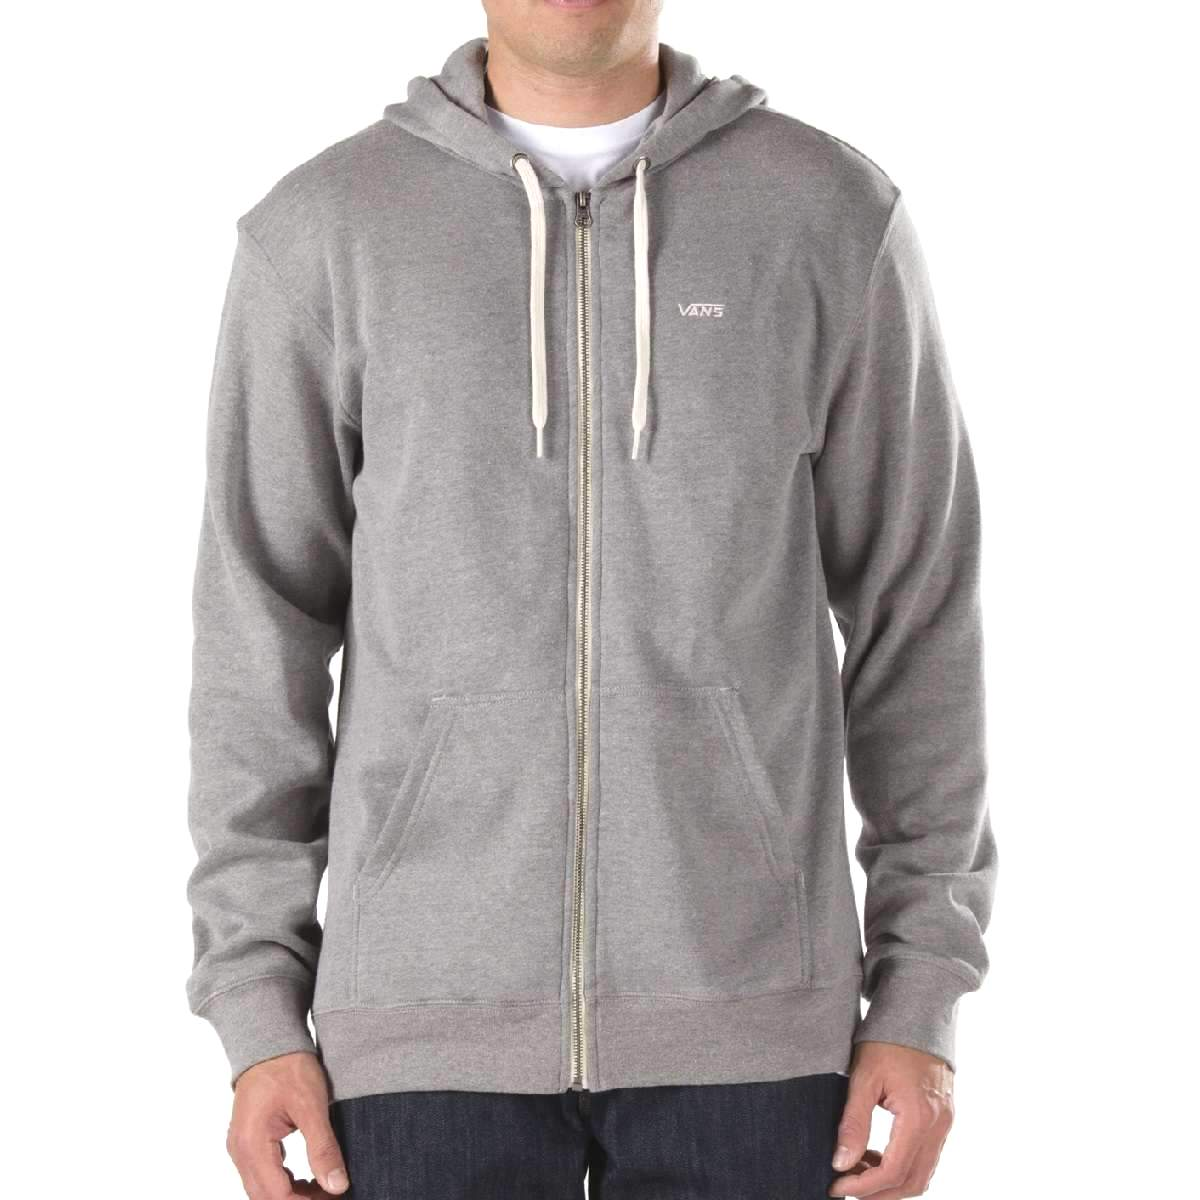 vans core basic zip hoodie ii herren jacke kapuzenjacke sweatjacke ebay. Black Bedroom Furniture Sets. Home Design Ideas